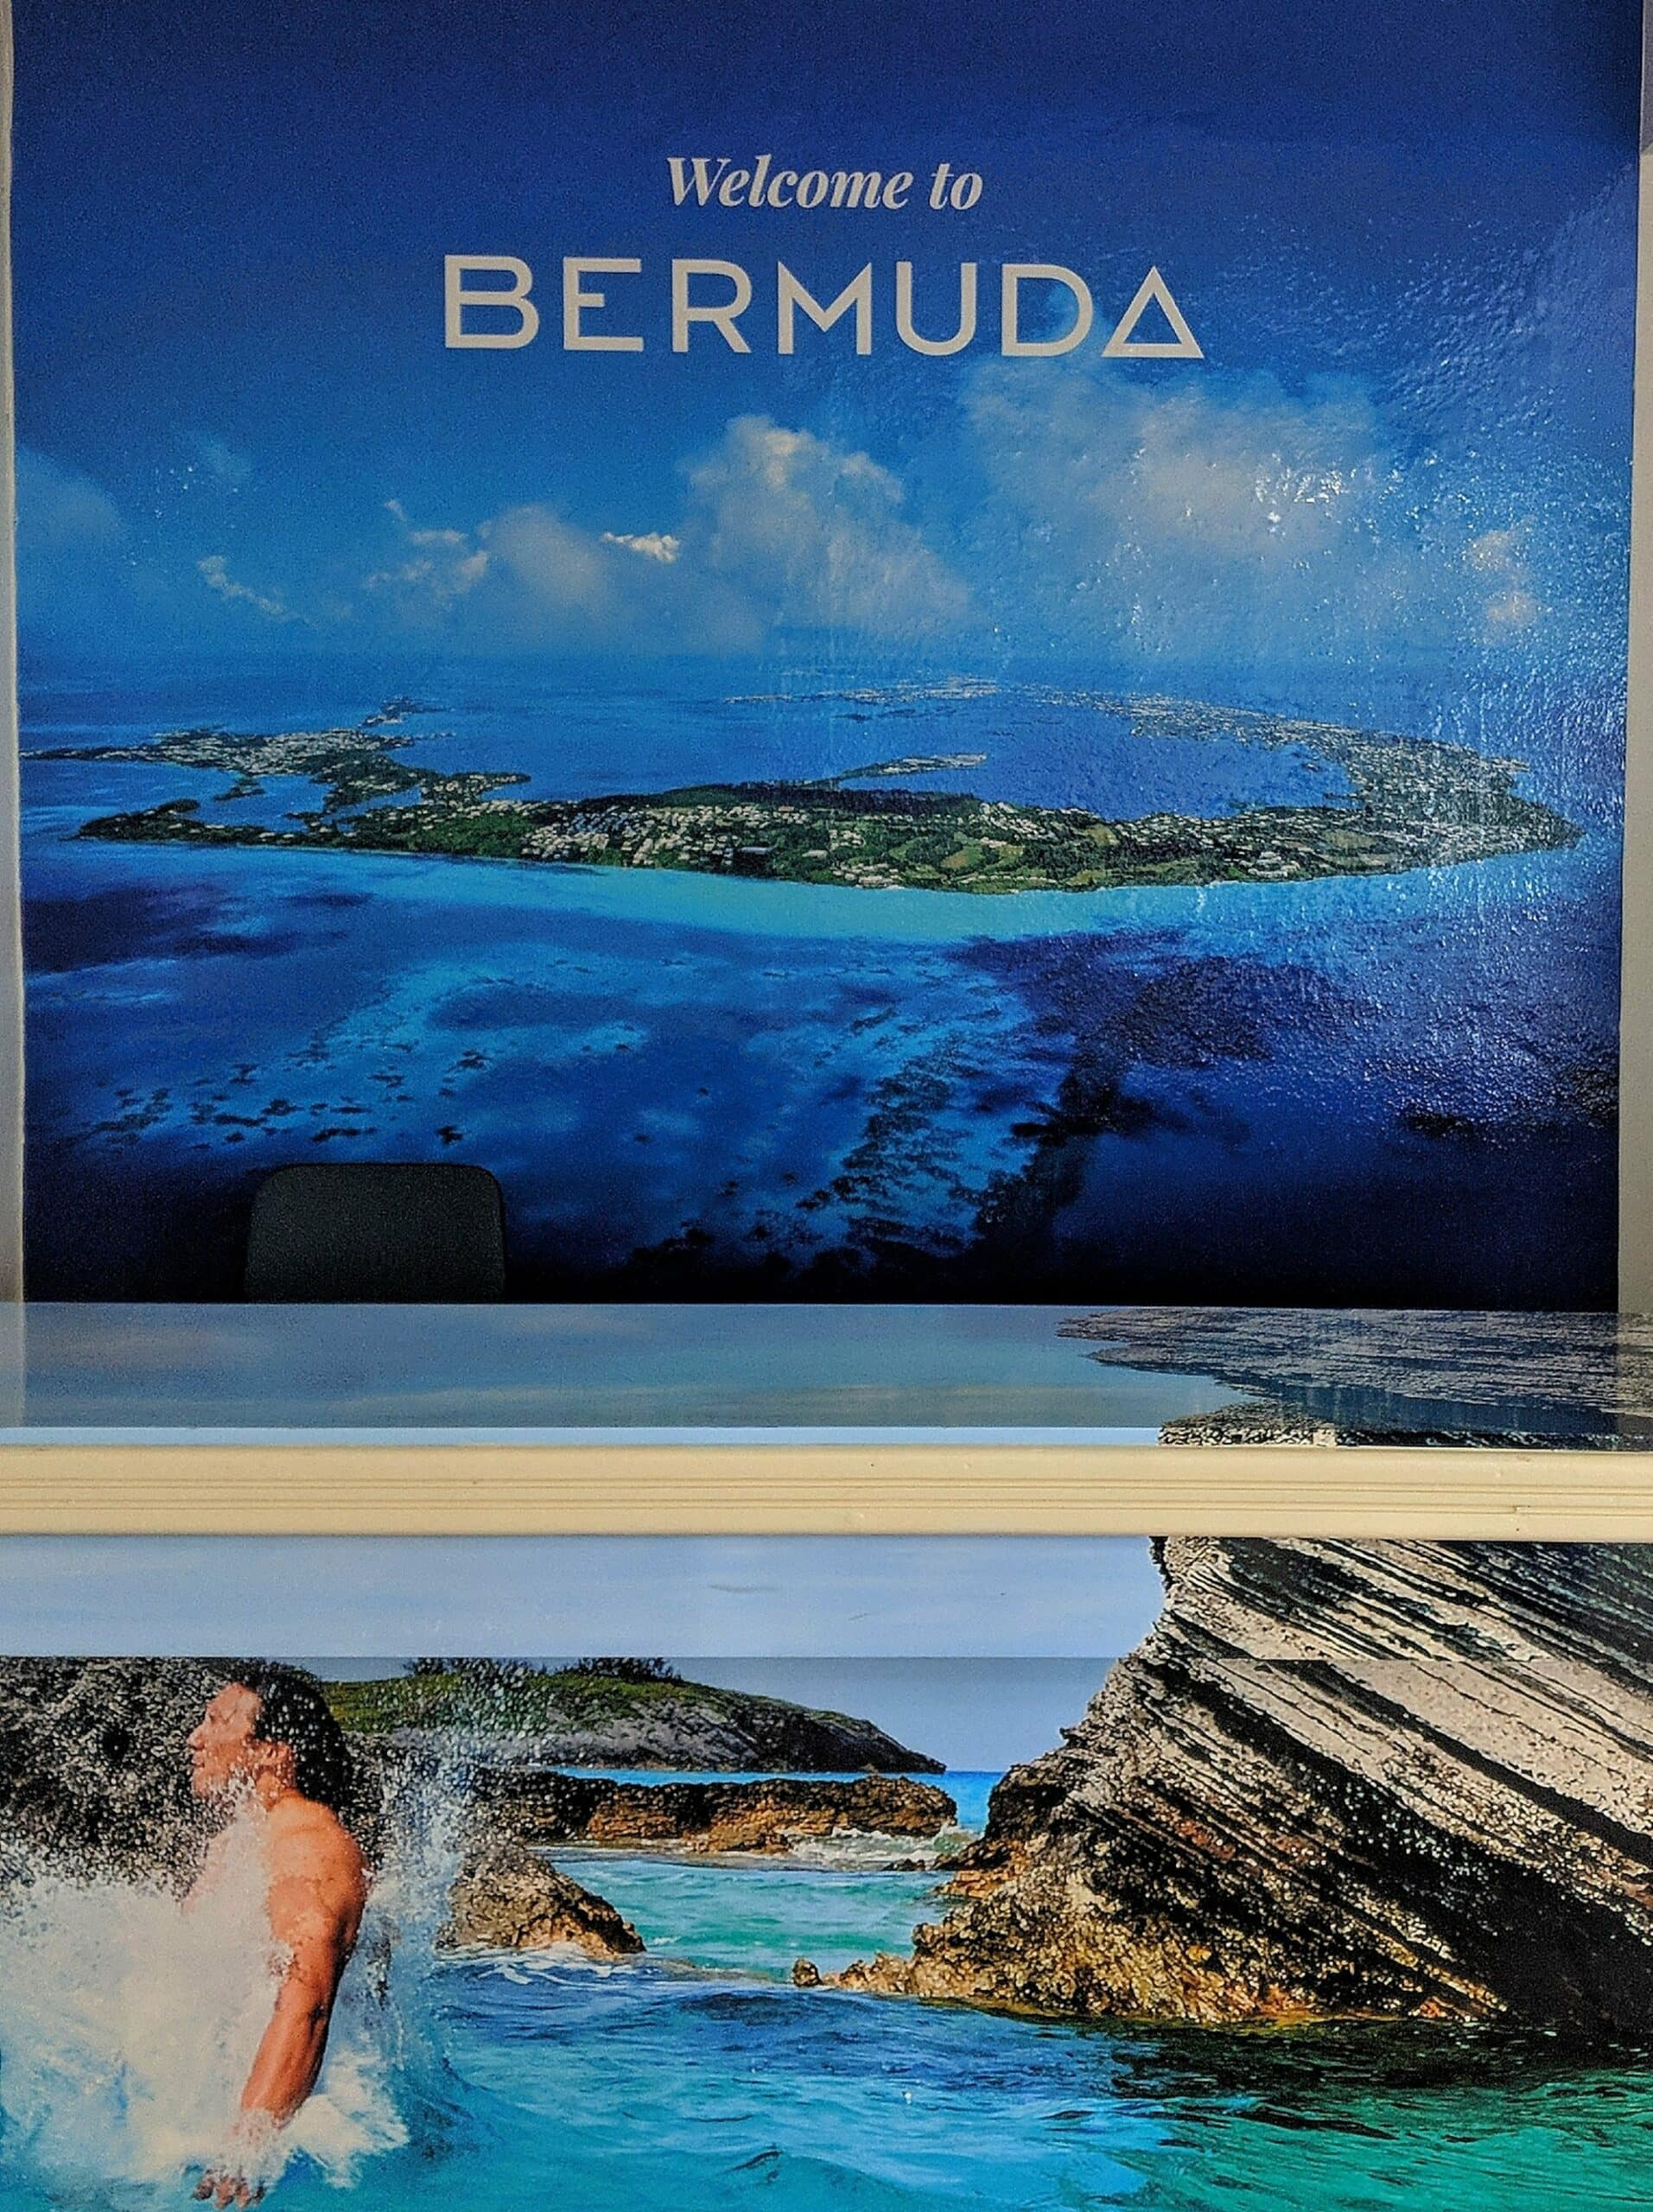 HOW I SPENT MY FIRST DAY IN BERMUDA